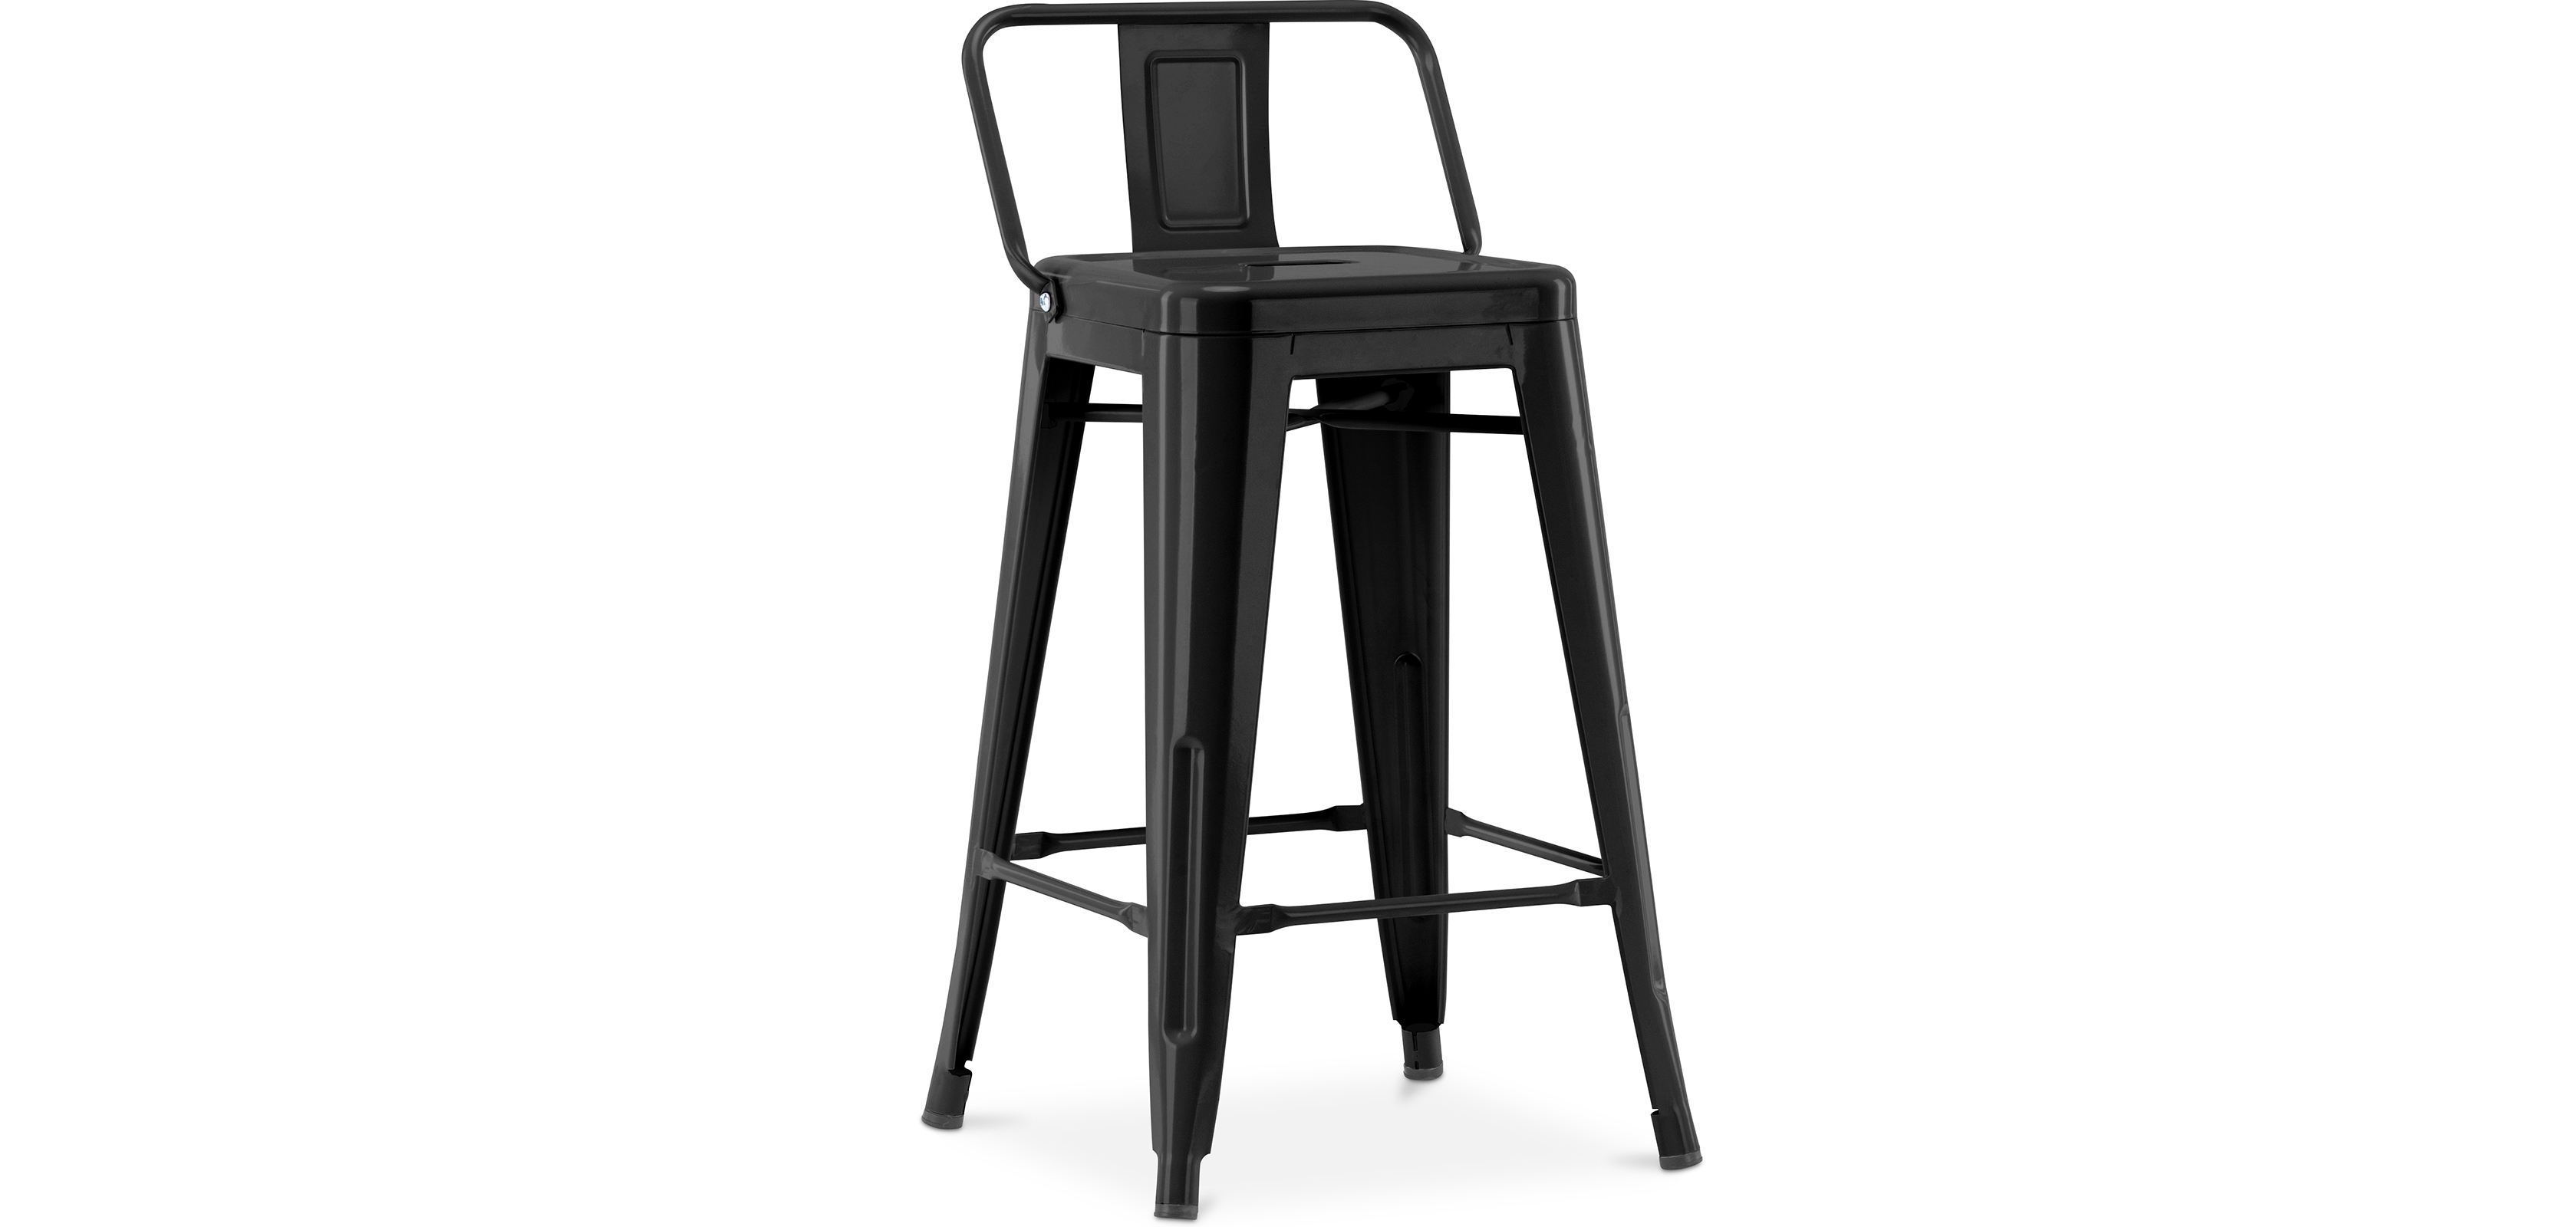 Buy Tolix Style stool with small backrest - 60cm Black 58409 - in the UK